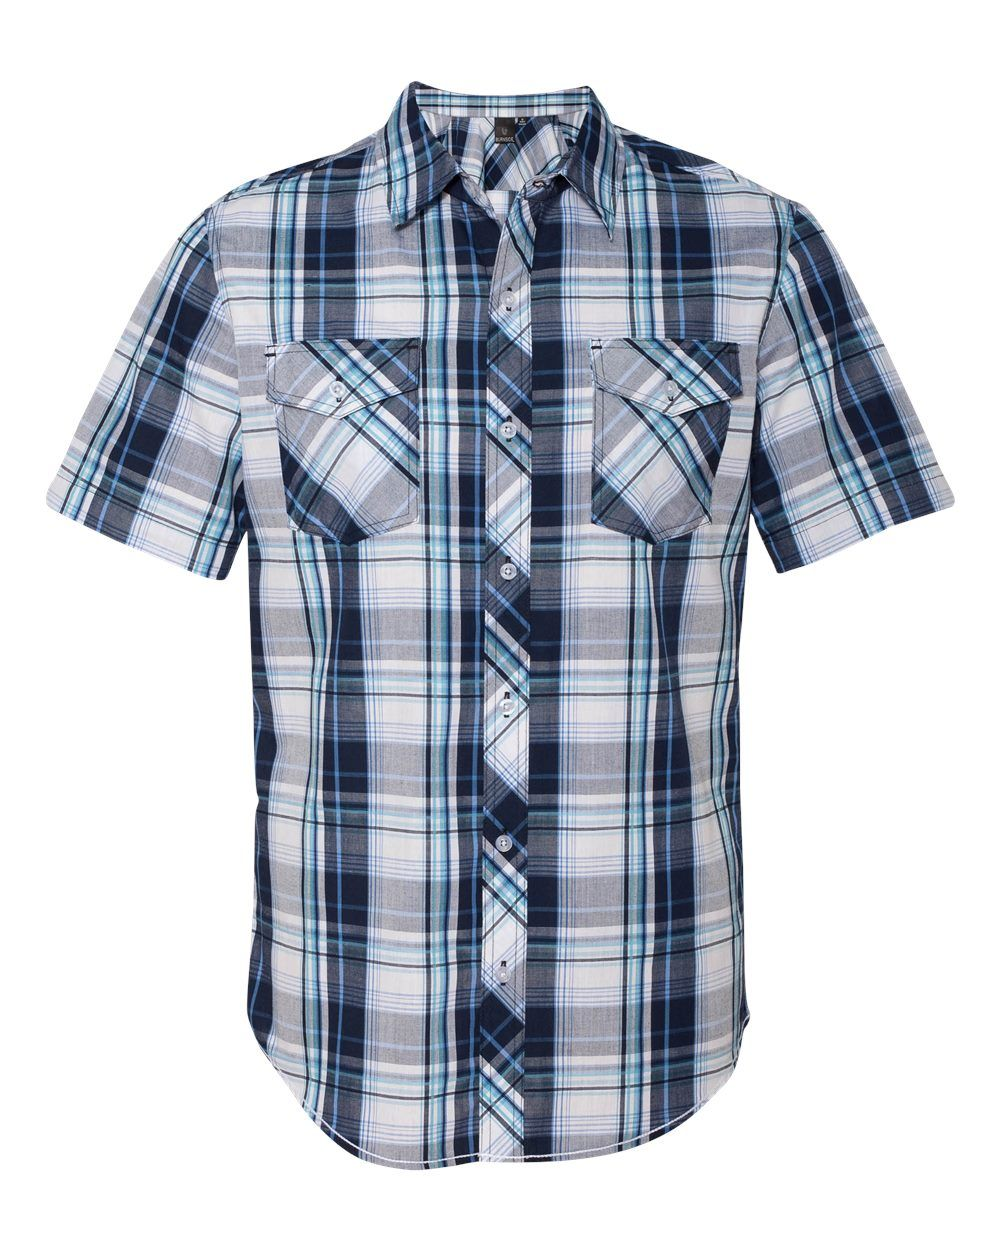 Men's Burnside Navy Plaid Short Sleeve Shirt B9202 | Men's ...